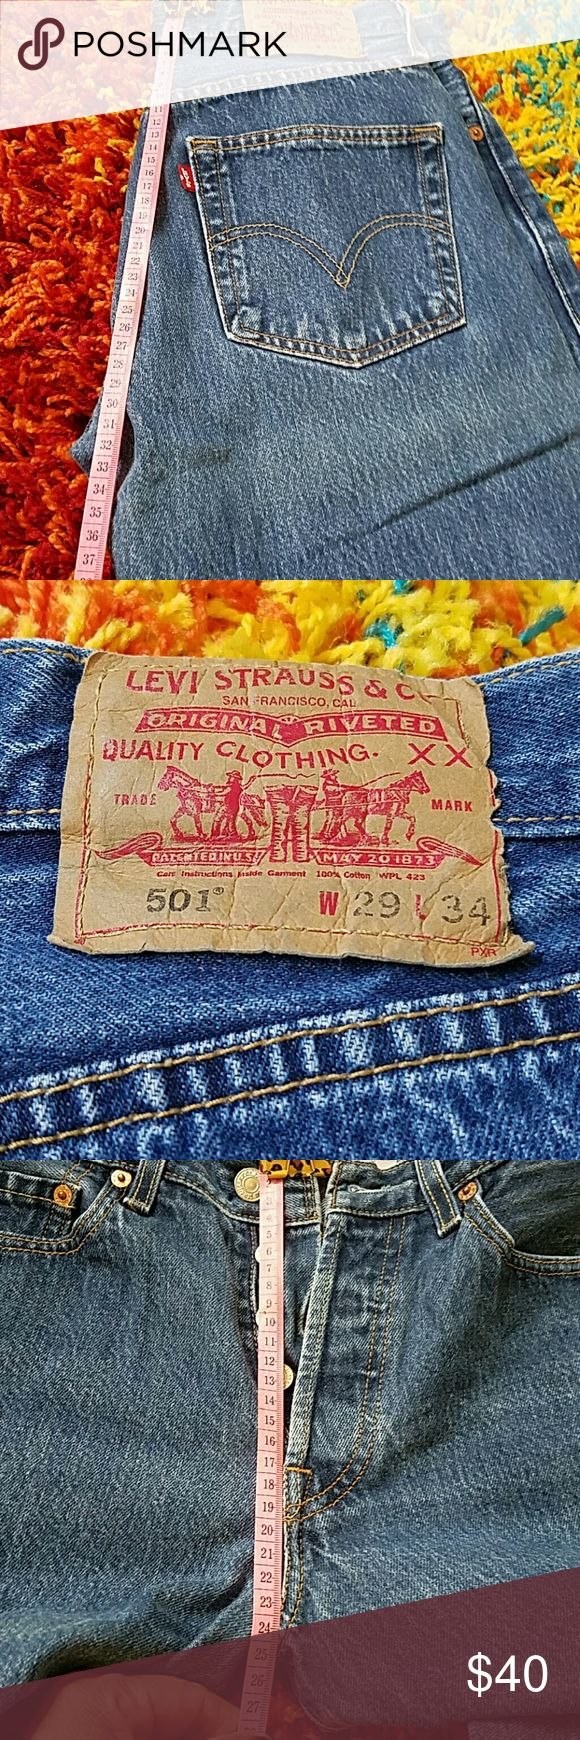 Levi's  (W29 L34) 501 Worn jeans no stains no tares. Nice pair of fitting jeans. All jeans sales are final. Please ask questions before purchasing item. Offers considered. Levi's Jeans Bootcut